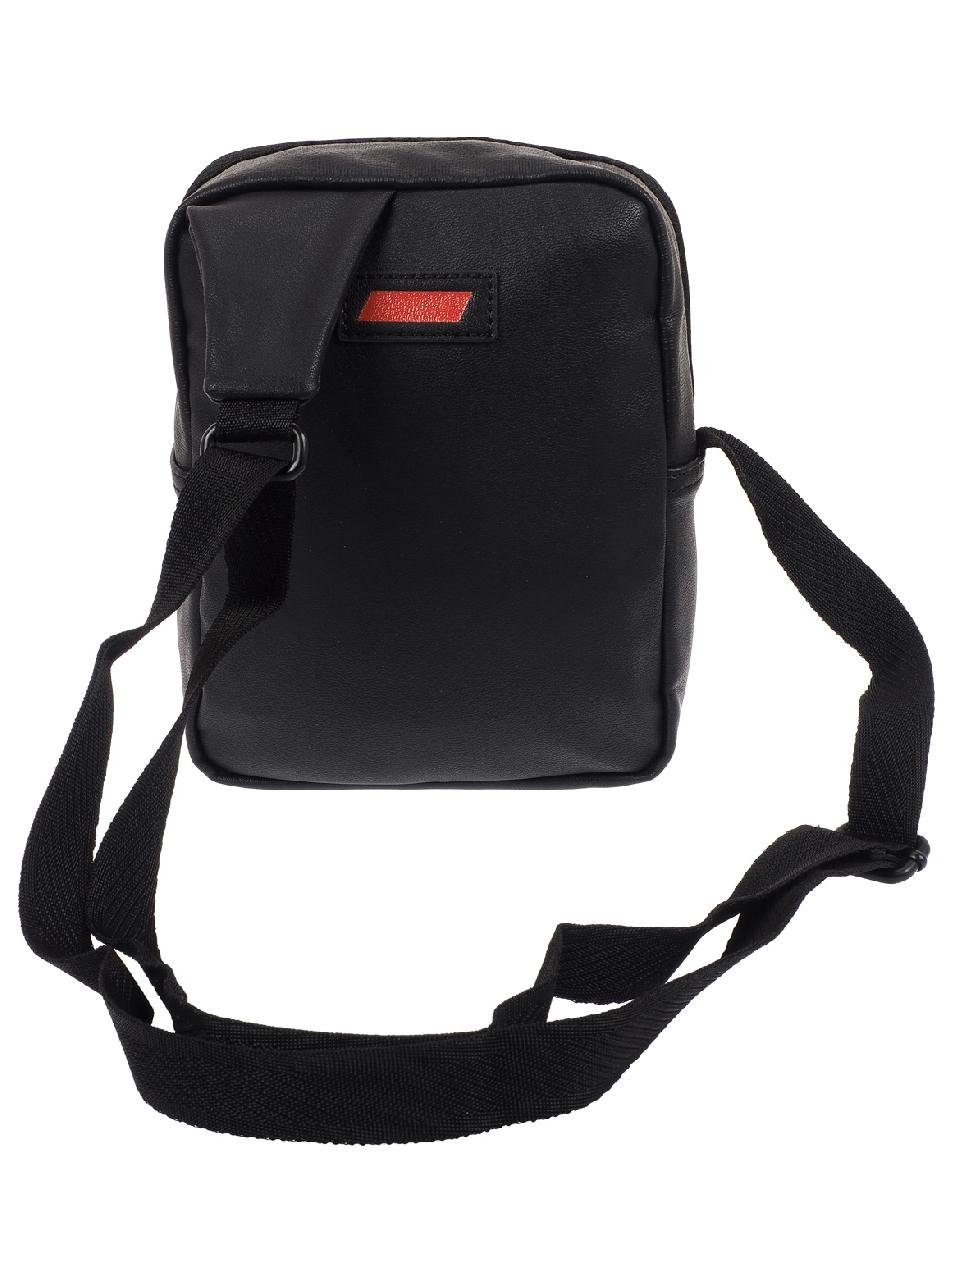 Puma Synthetic 18 cms Black Messenger Bag (7518901)  Amazon.in  Bags ... 538a1c083274f